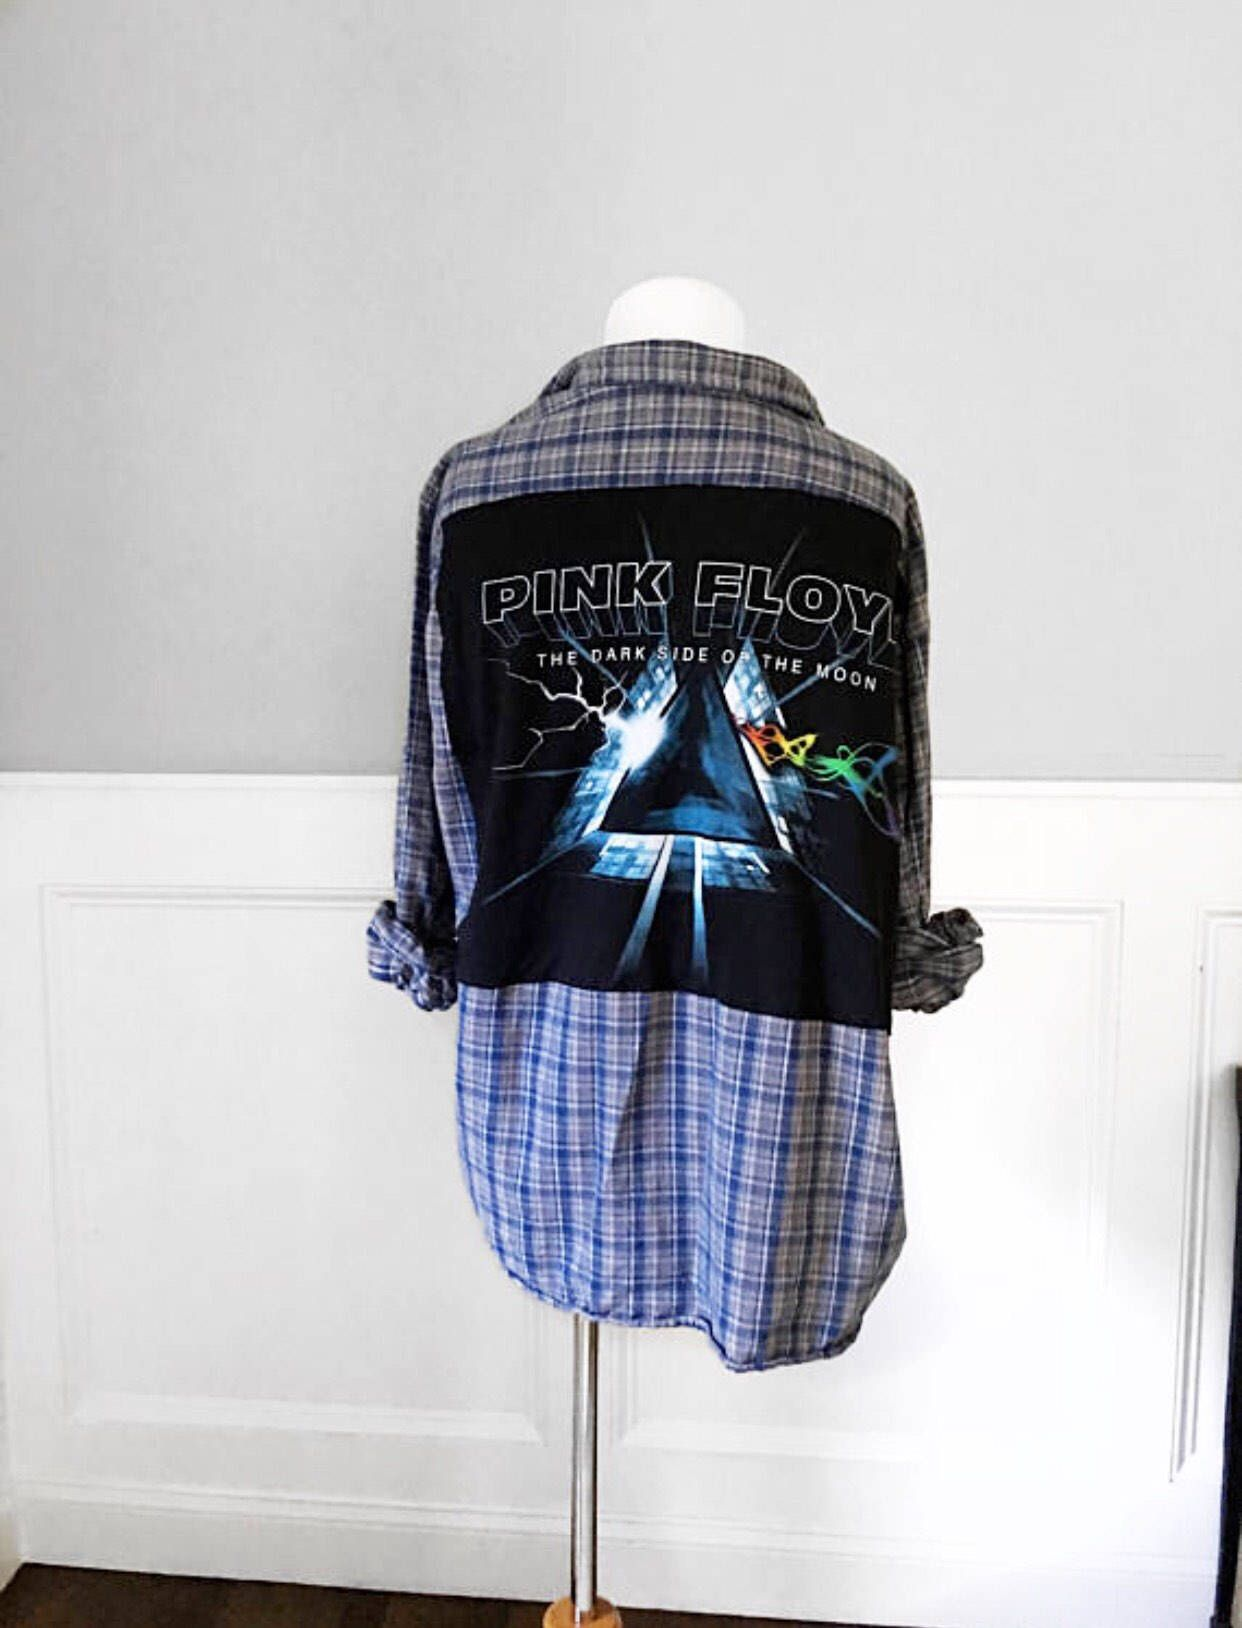 Green Day flannel shirt shirt Green Day revolution radio Concert Tshirt on new brushed coton blue and black buffalo plaid flannel shirt C1ZljX2Ay